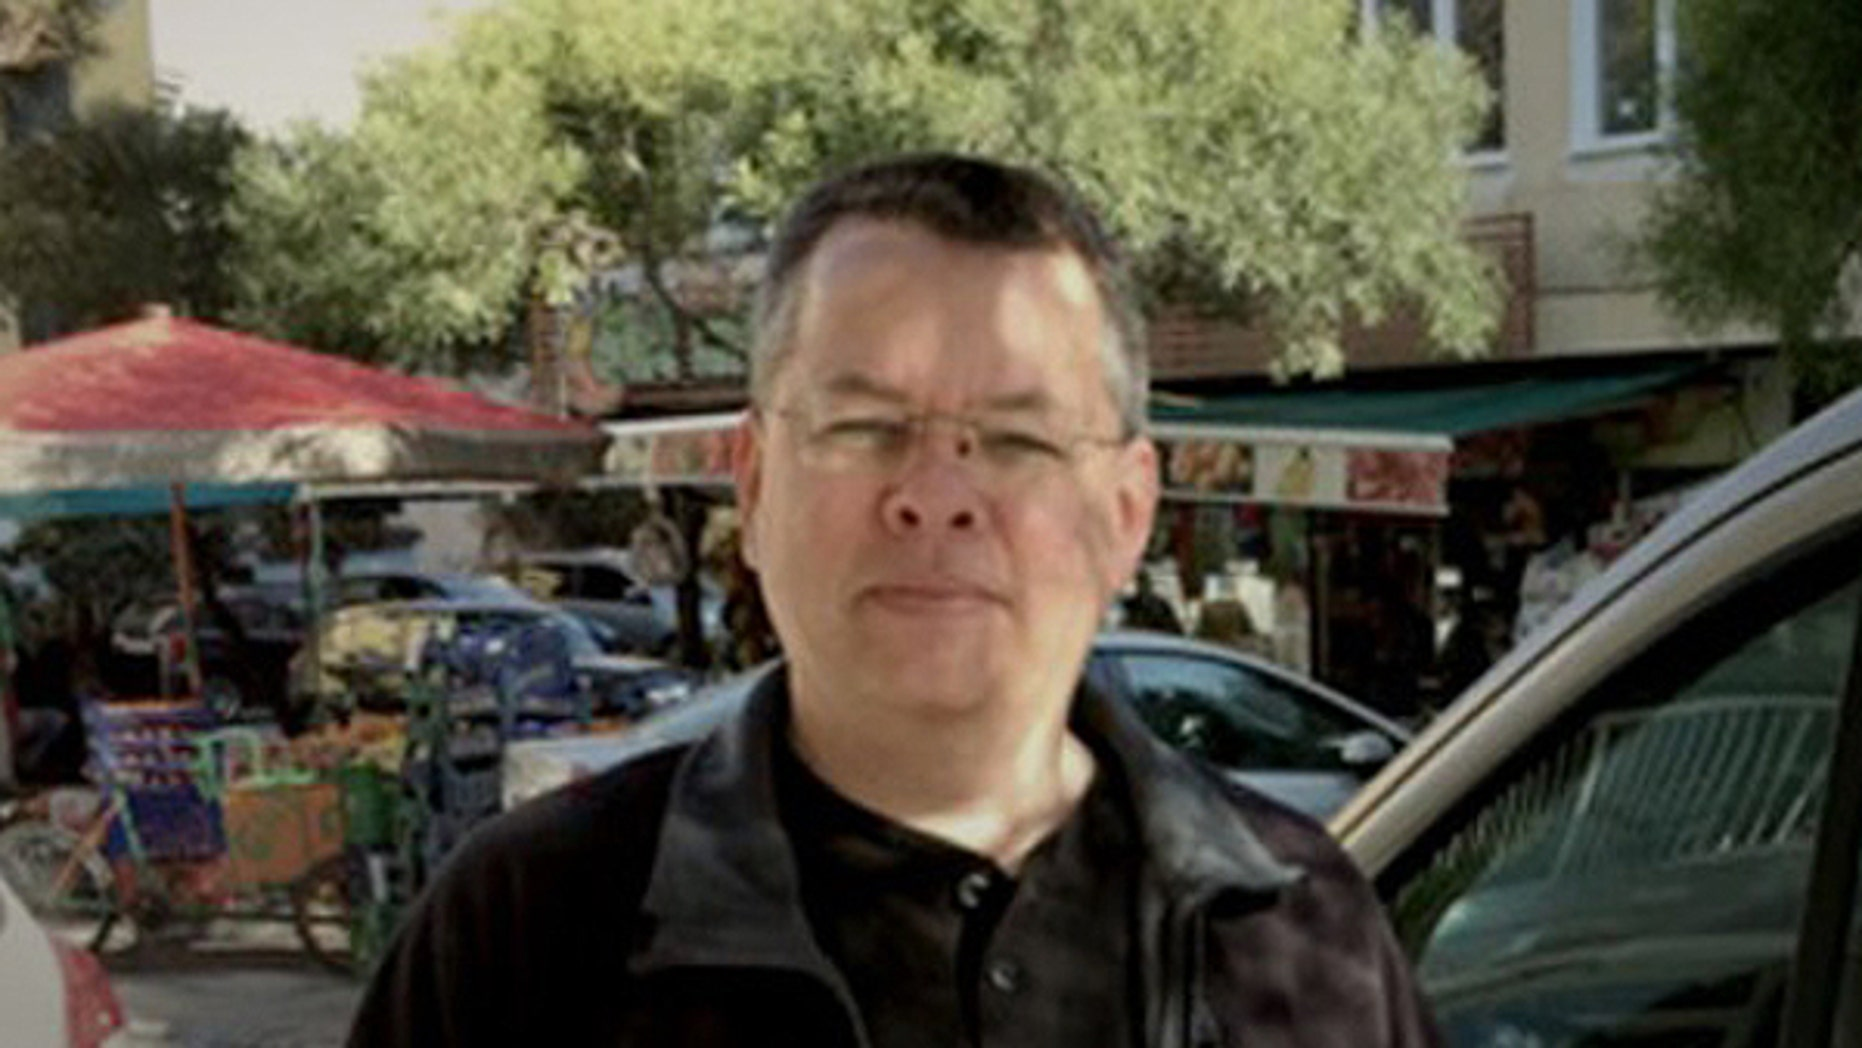 Pastor Andrew Brunson, who was detained nearly six months ago along with his wife in the Turkish coastal town of Izmir, remains held in a prison without formal charges.